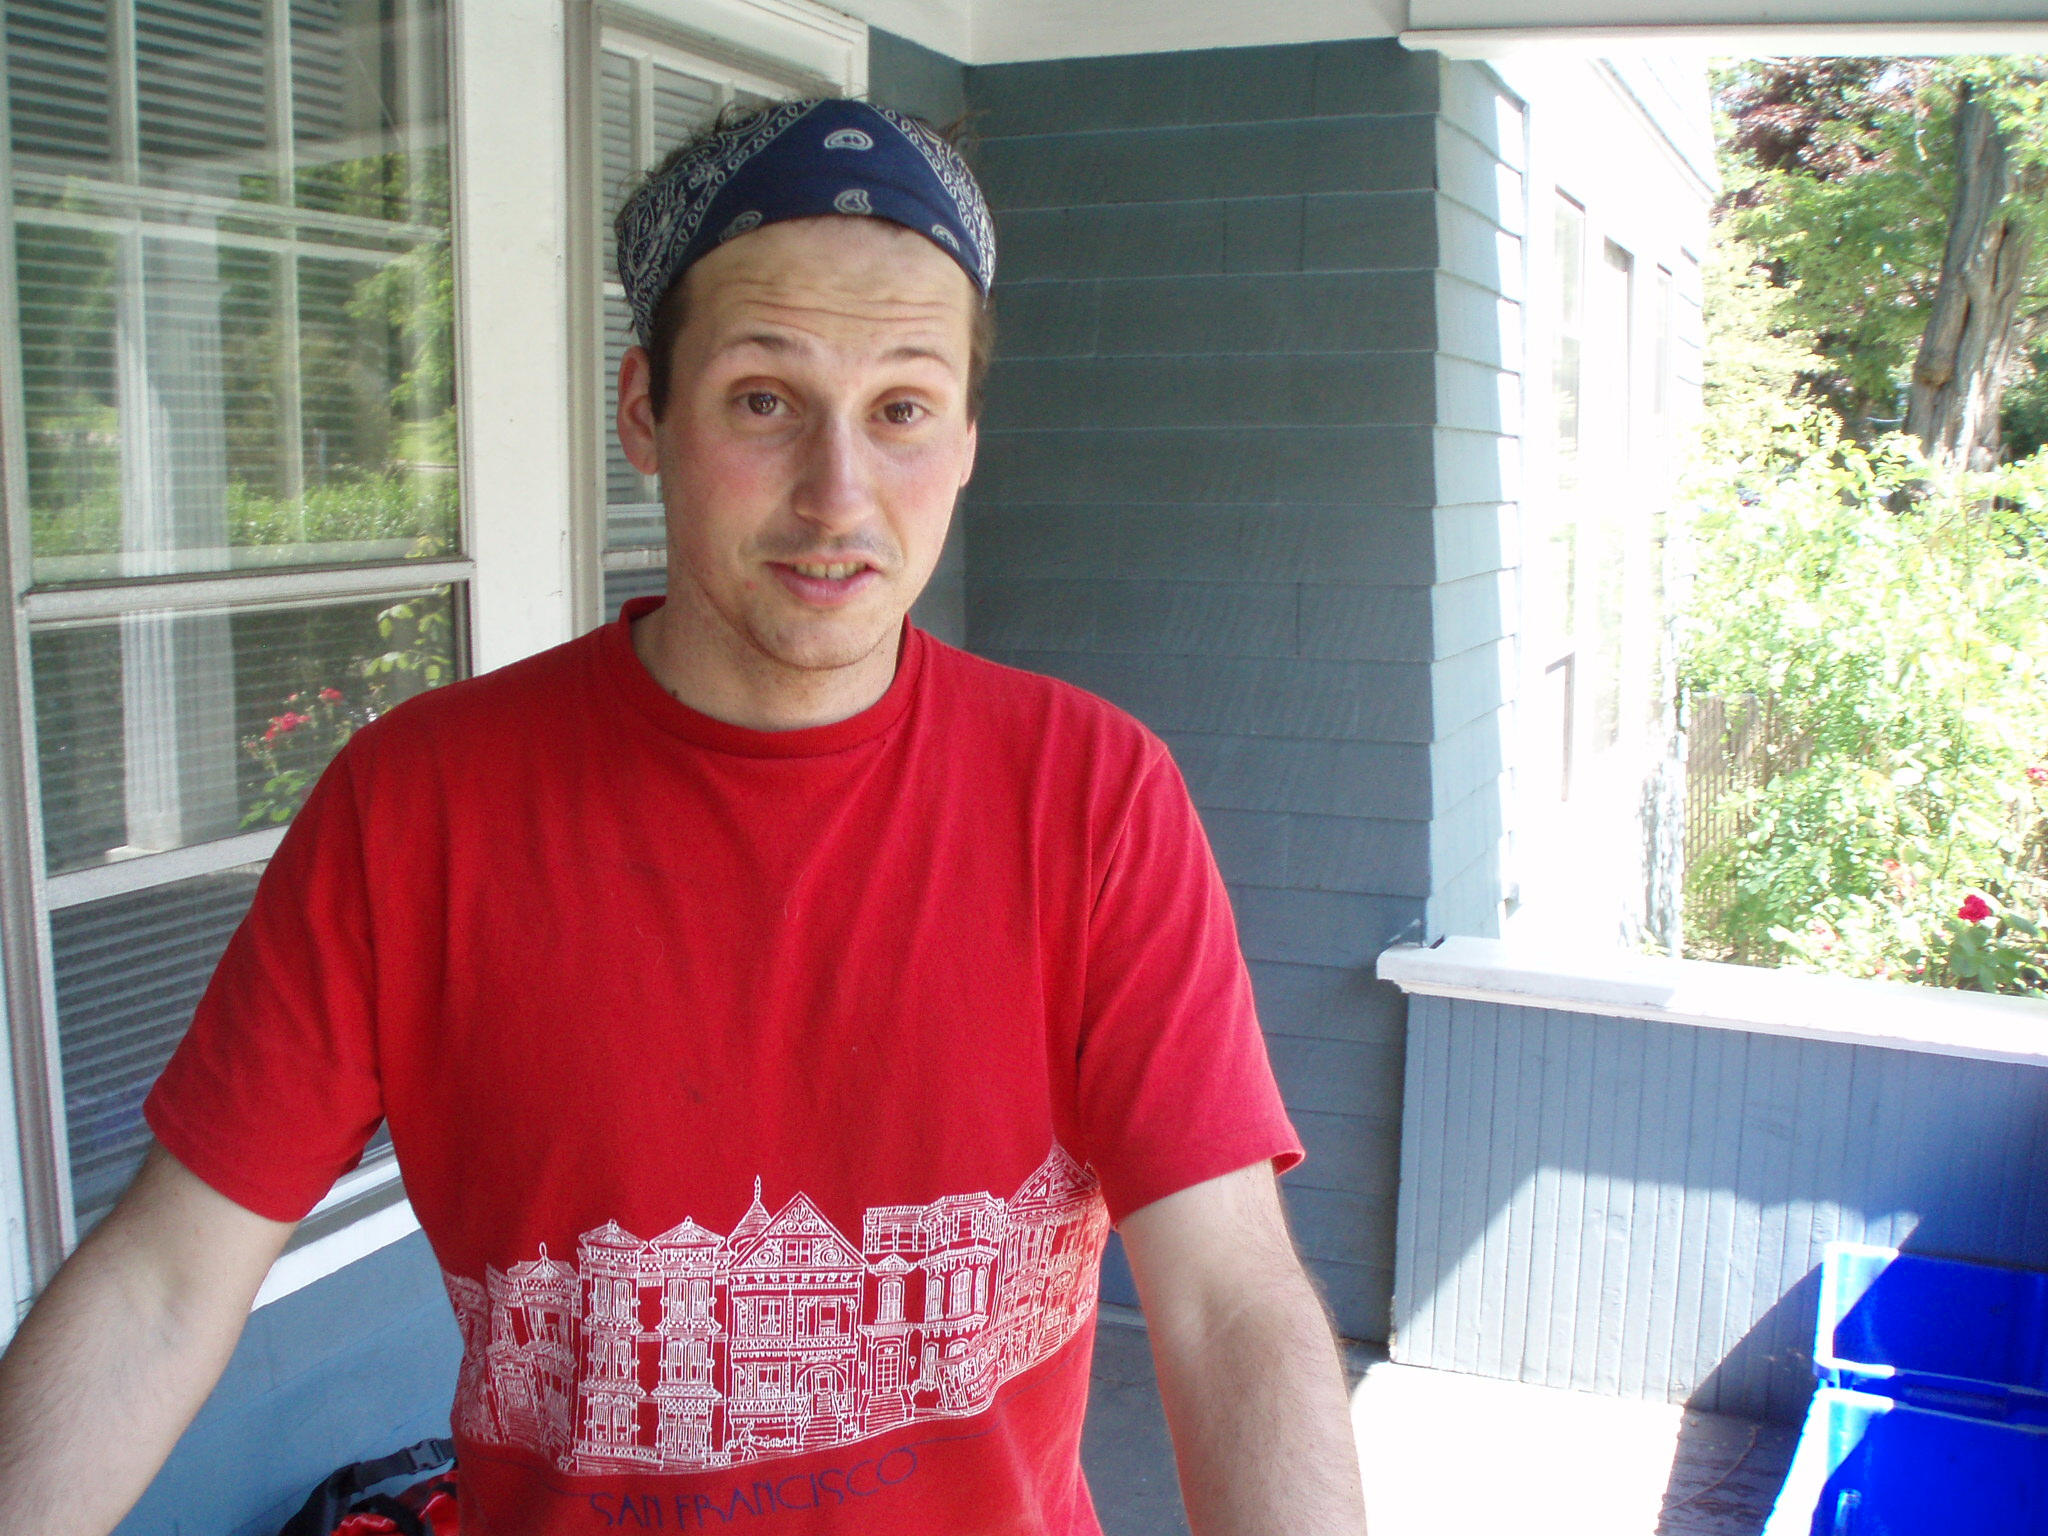 Mike Riscica wearing a red shirt and a bandanna